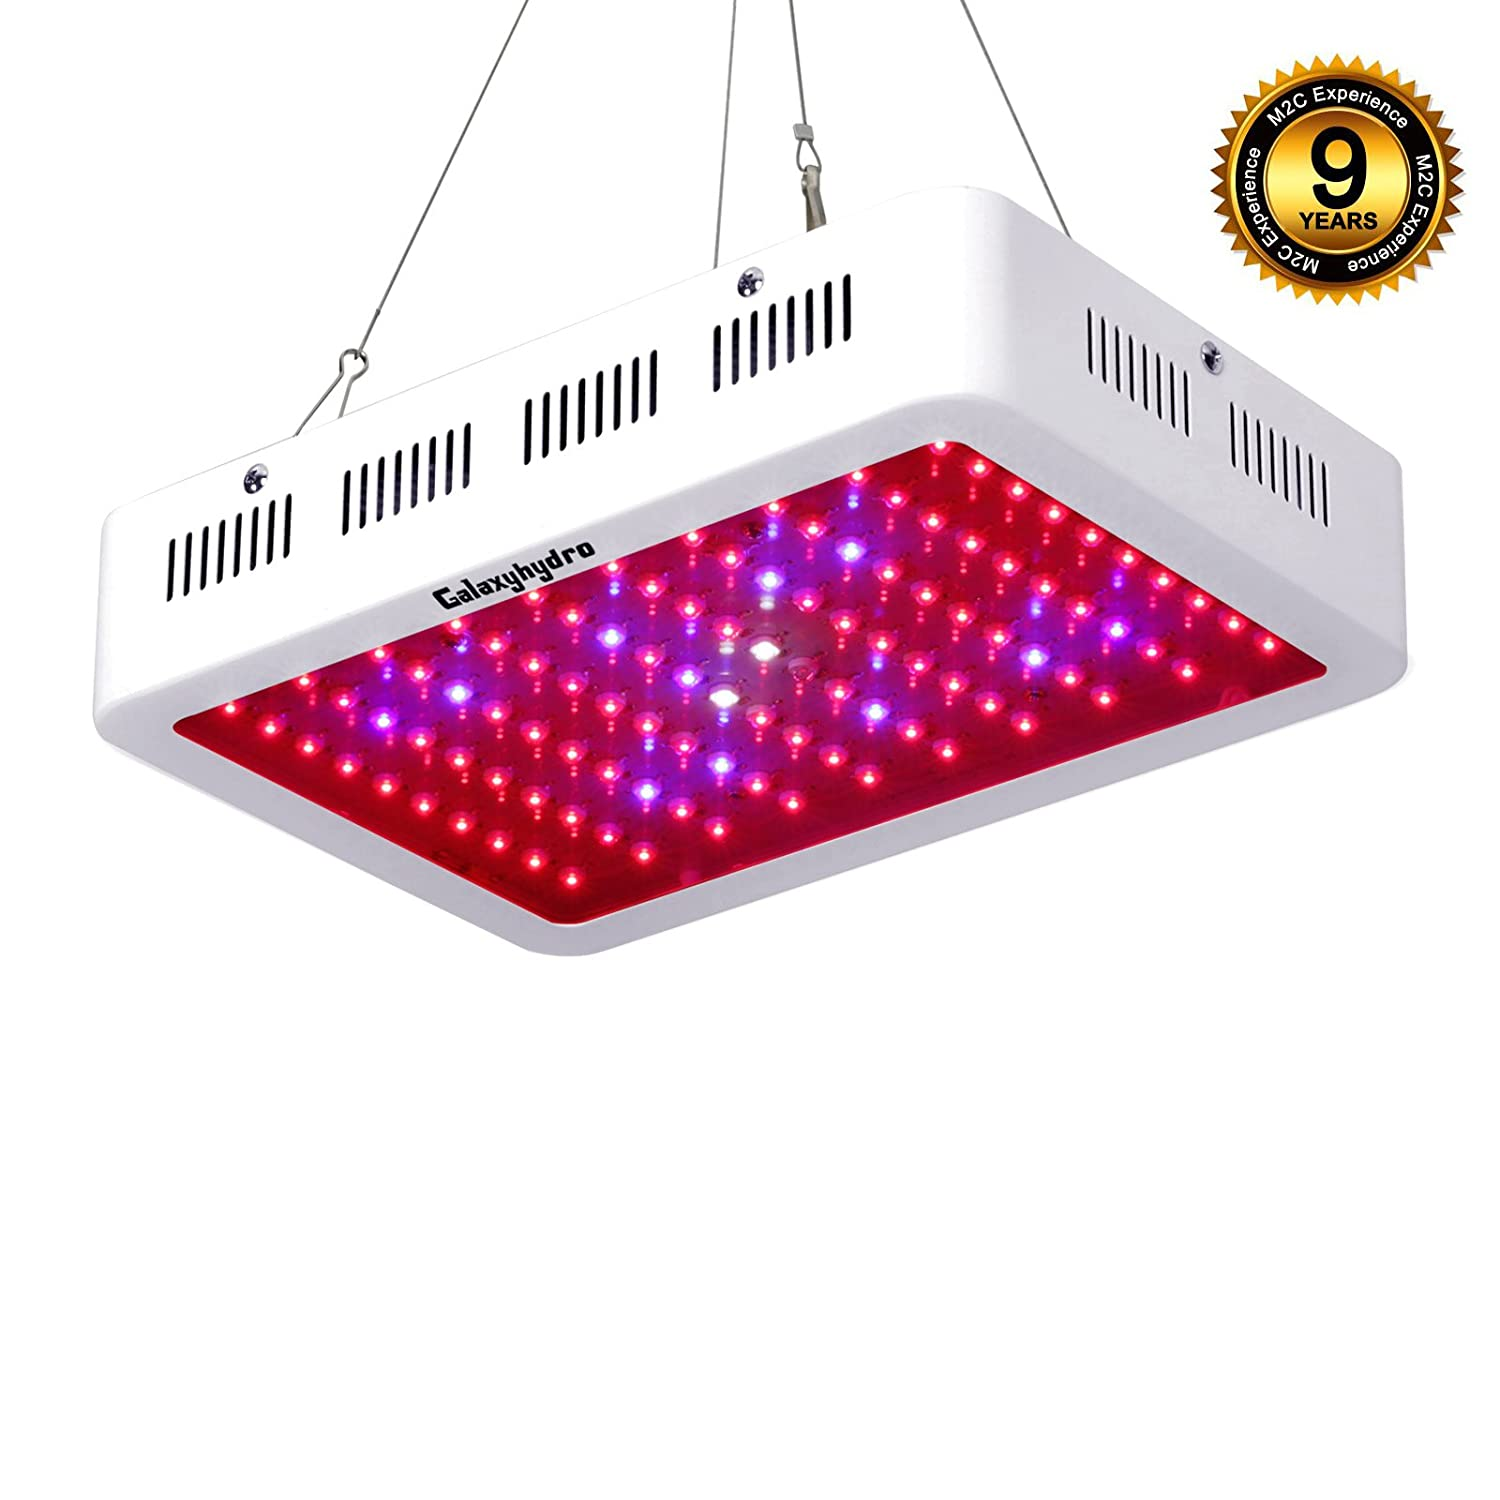 Roleadro LED Grow light, 300 W Galaxyhydro series